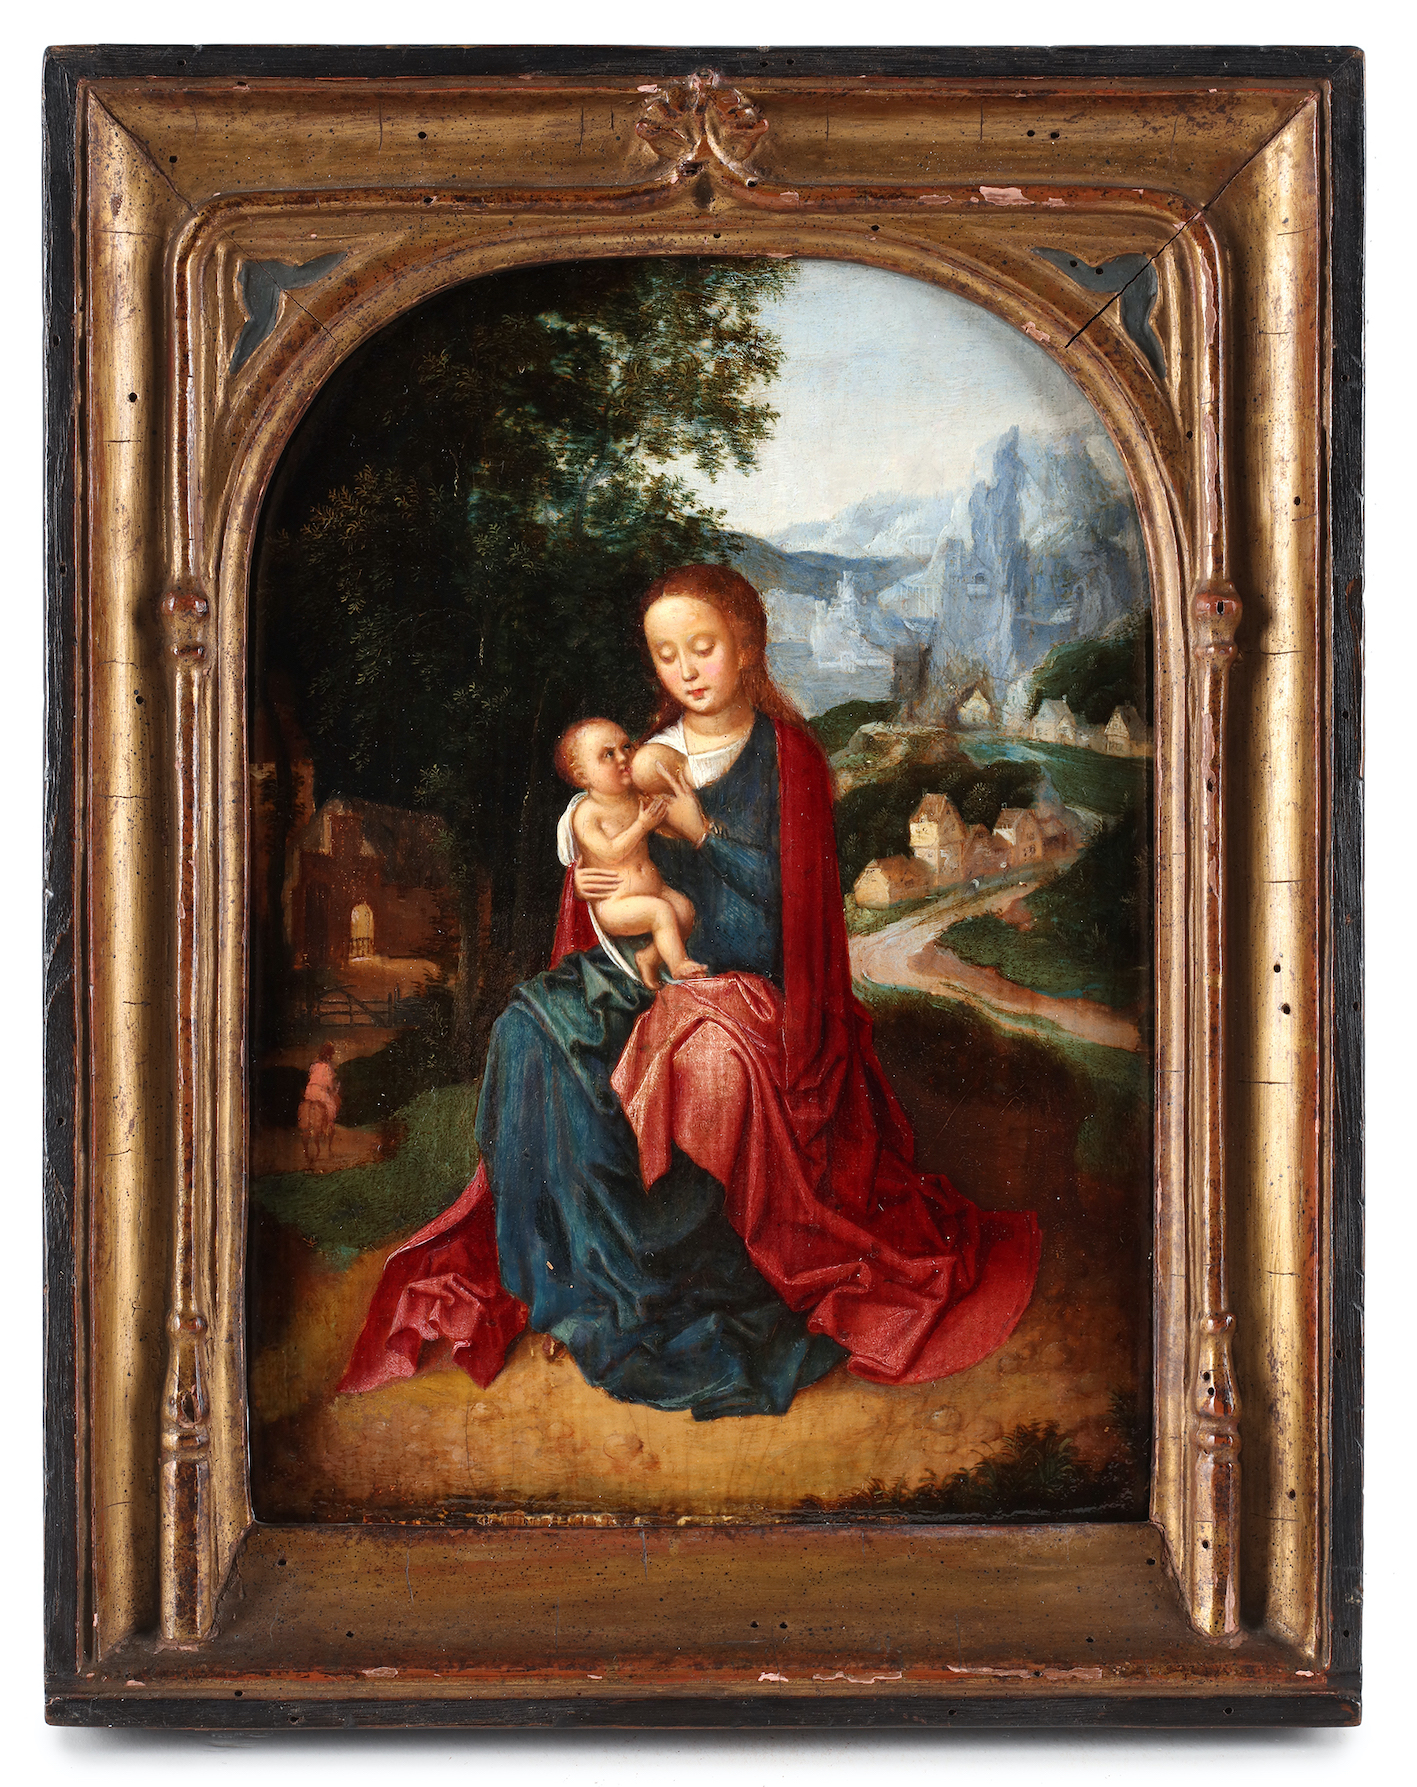 A seated Virgin with child in a mountainous landscape